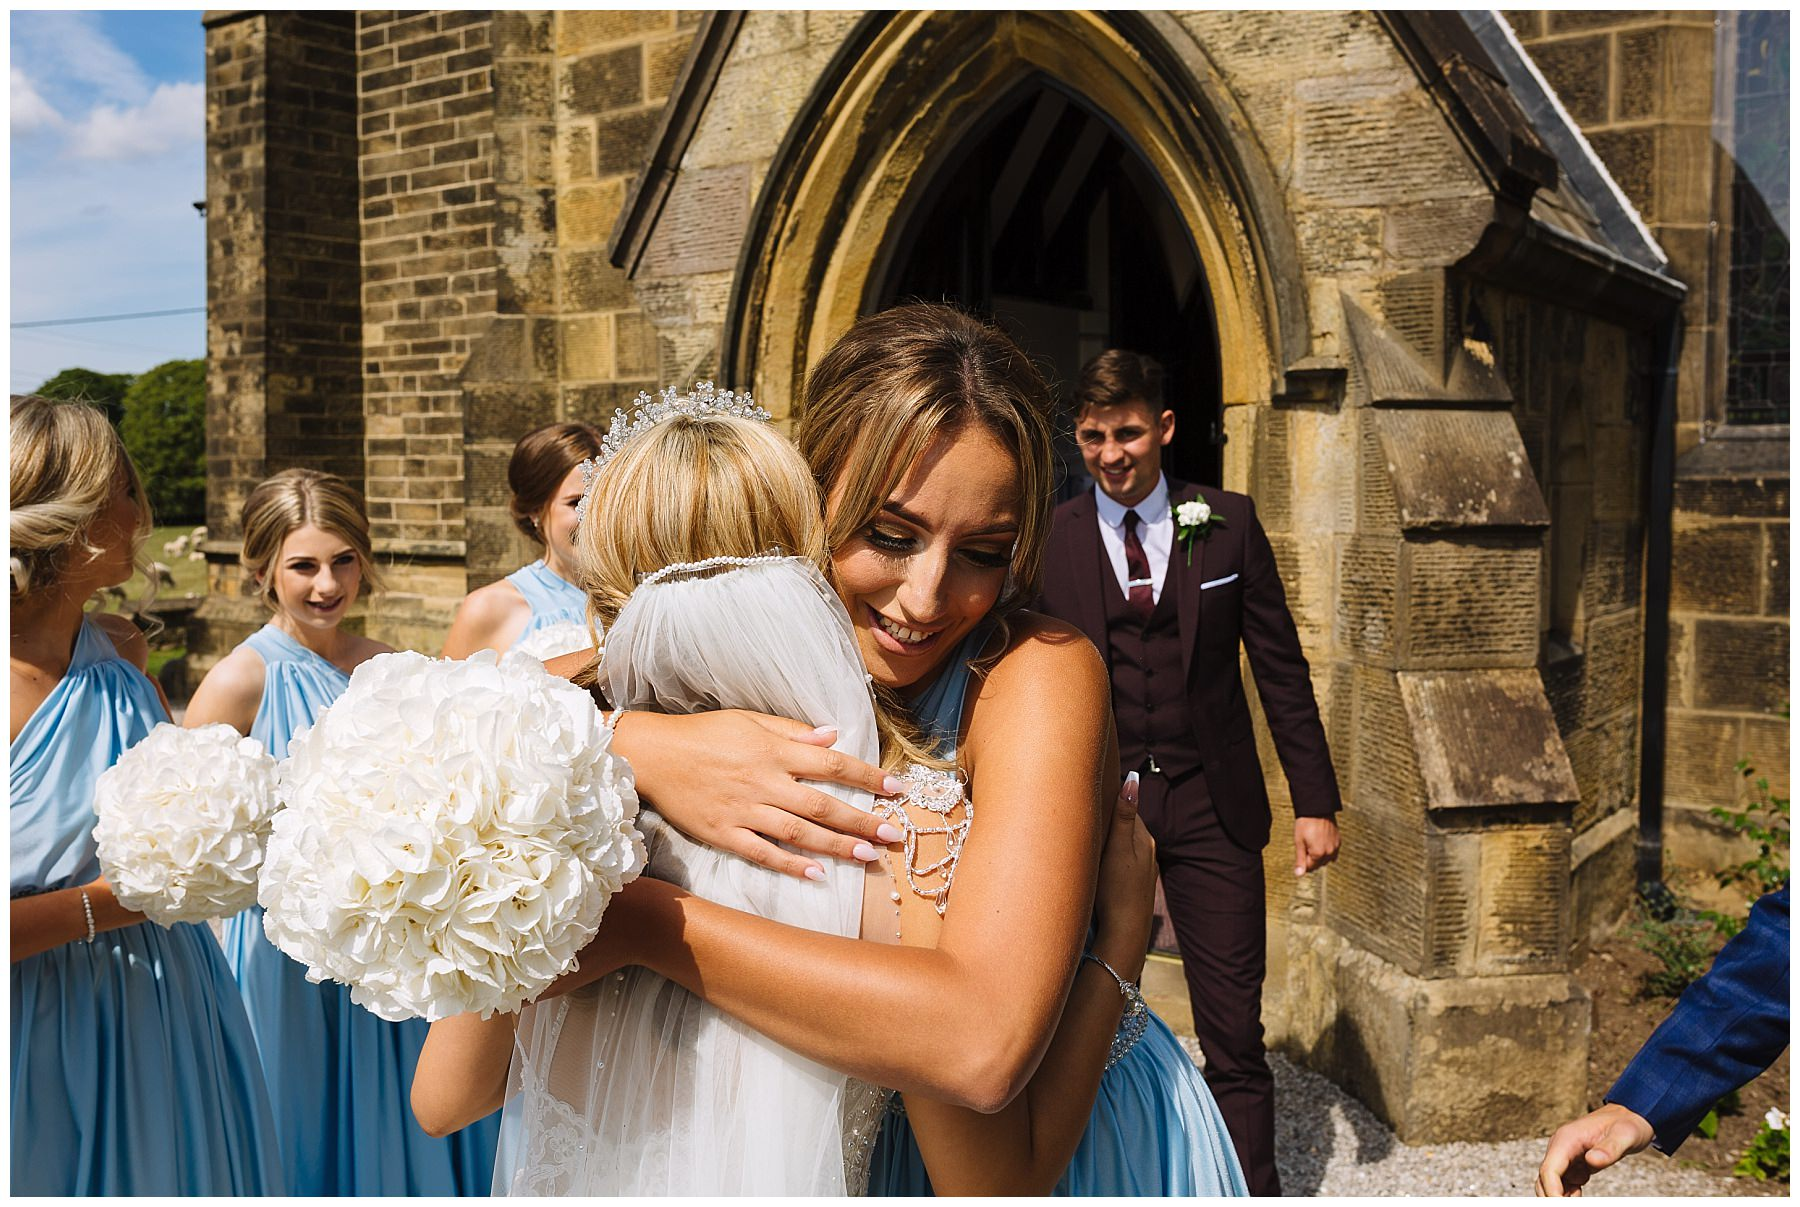 hugs and celebrations with newly weds outside church